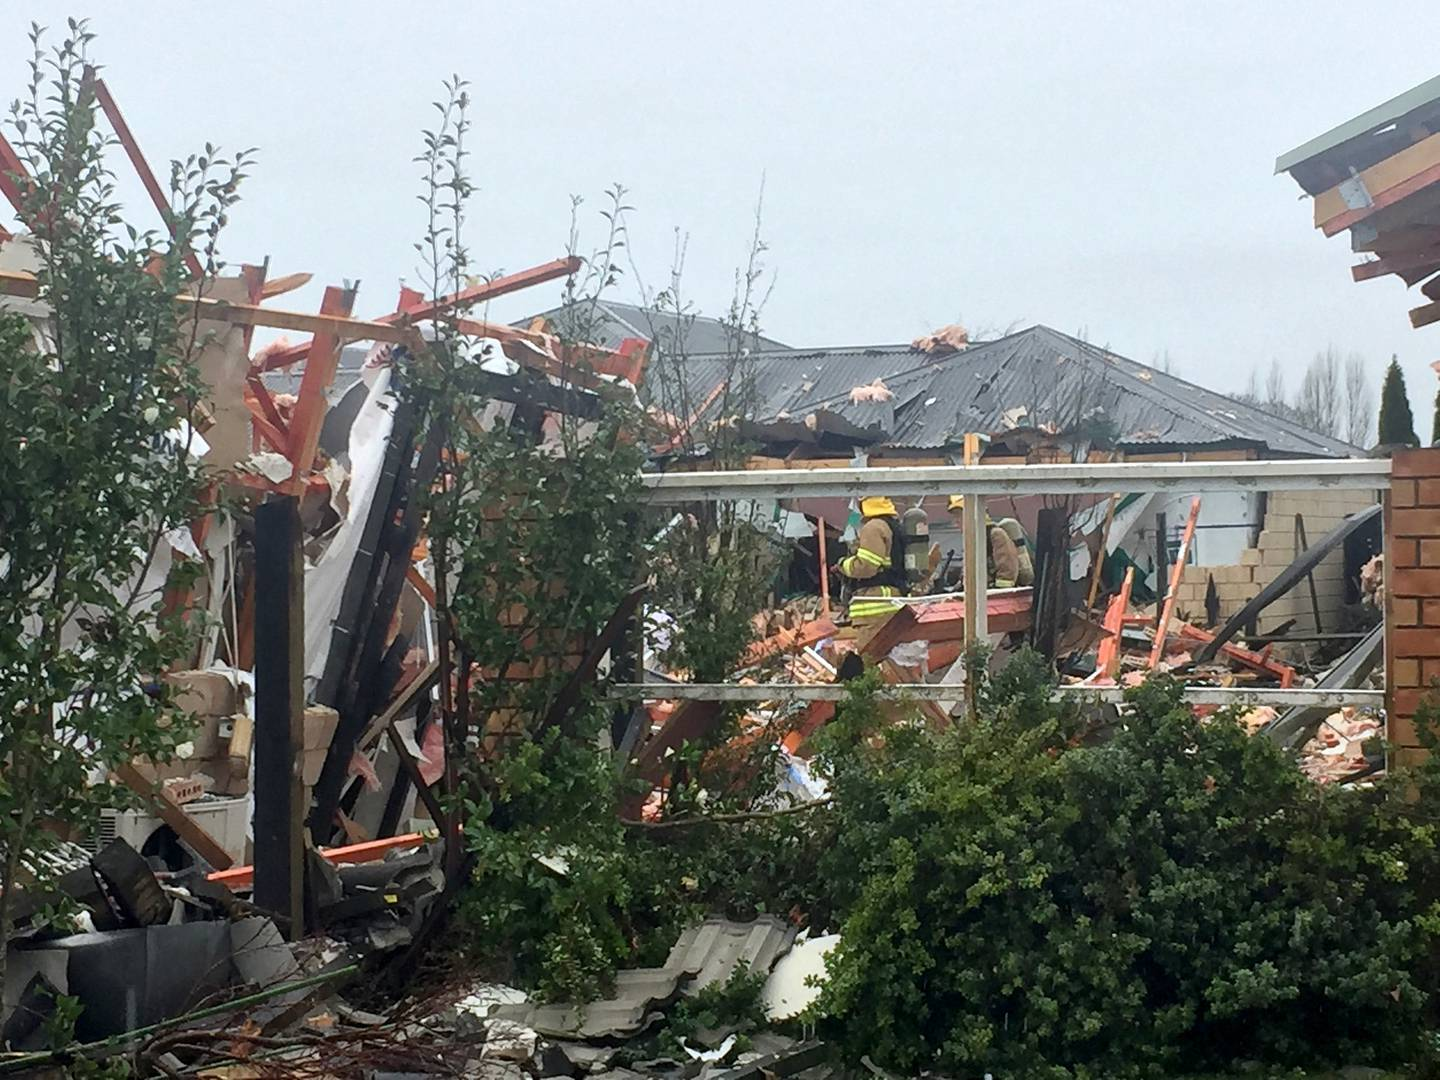 Scene of a serious gas explosion in the suburb of Northwood in Christchurch today. Photo: Amber...